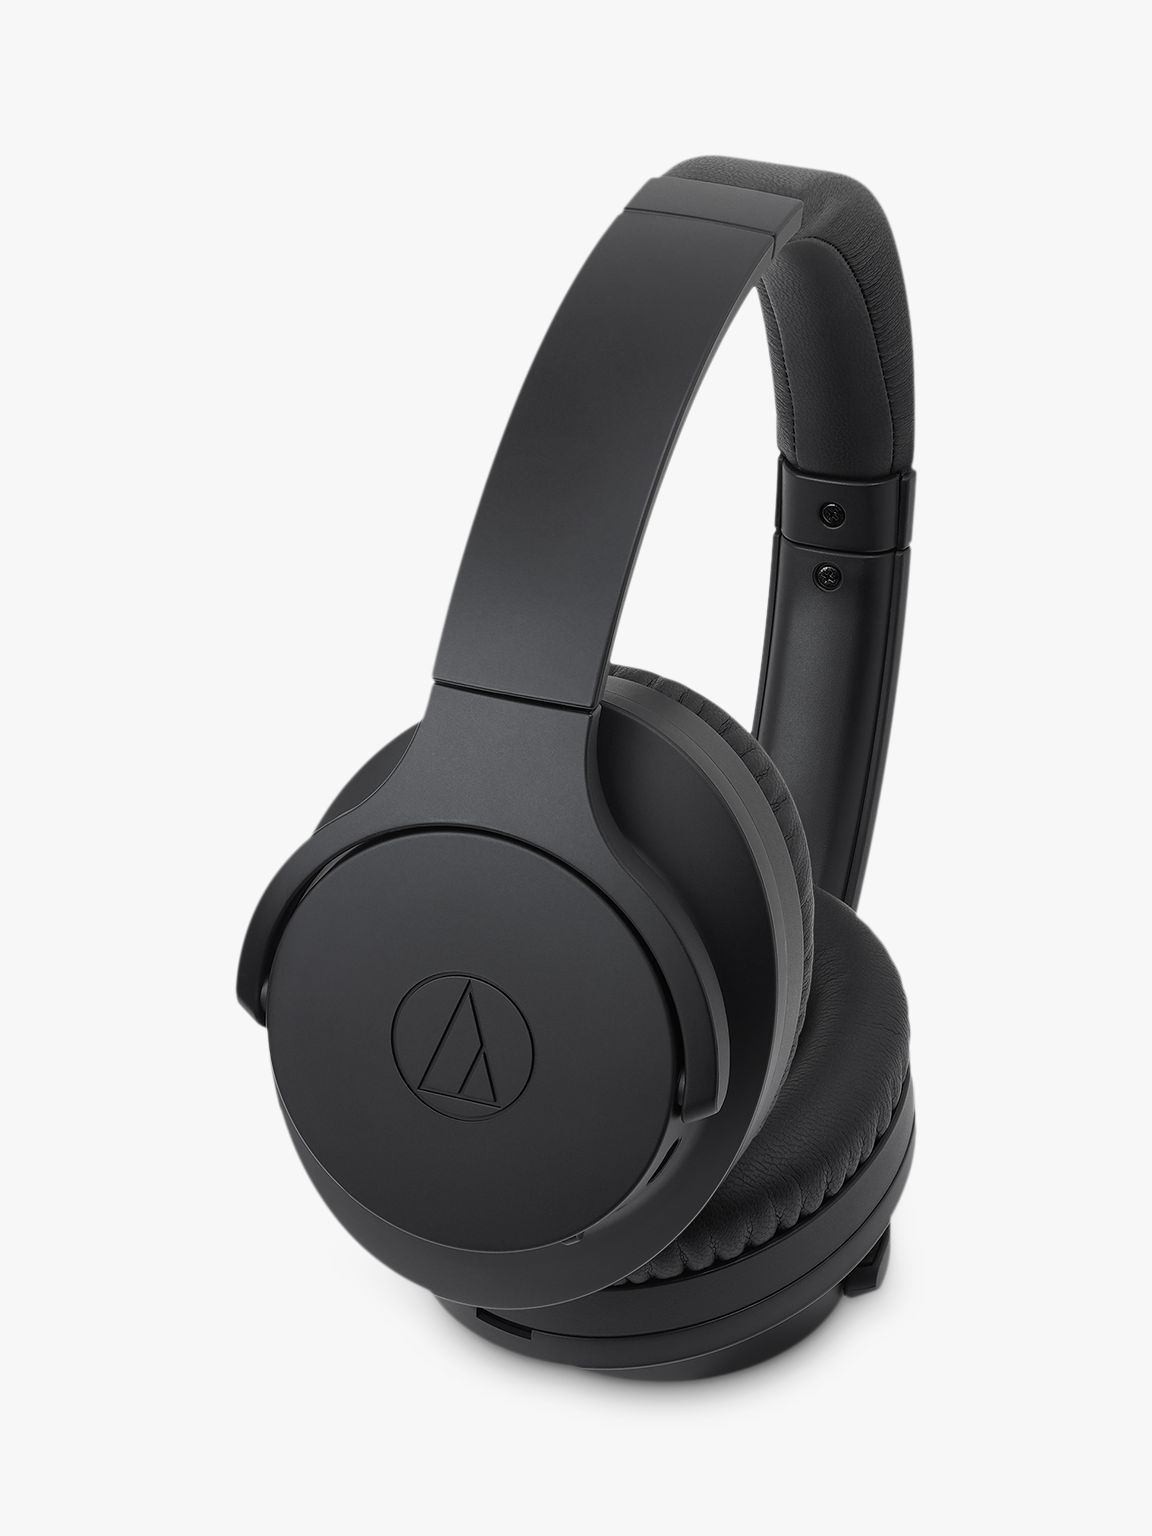 Audio-Technica Audio-Technica ATH-ANC700BT Active Noise-Cancelling Wireless Bluetooth Over-Ear Headphones